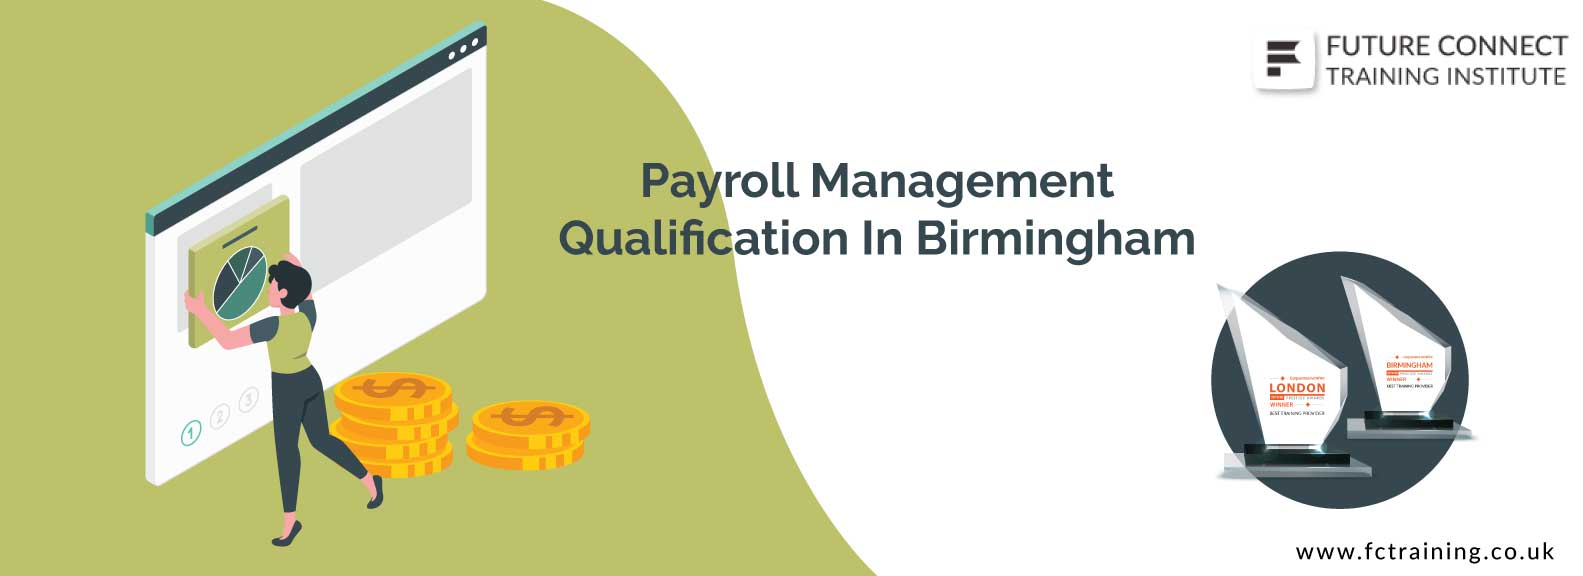 Payroll Management Qualification In Birmingham